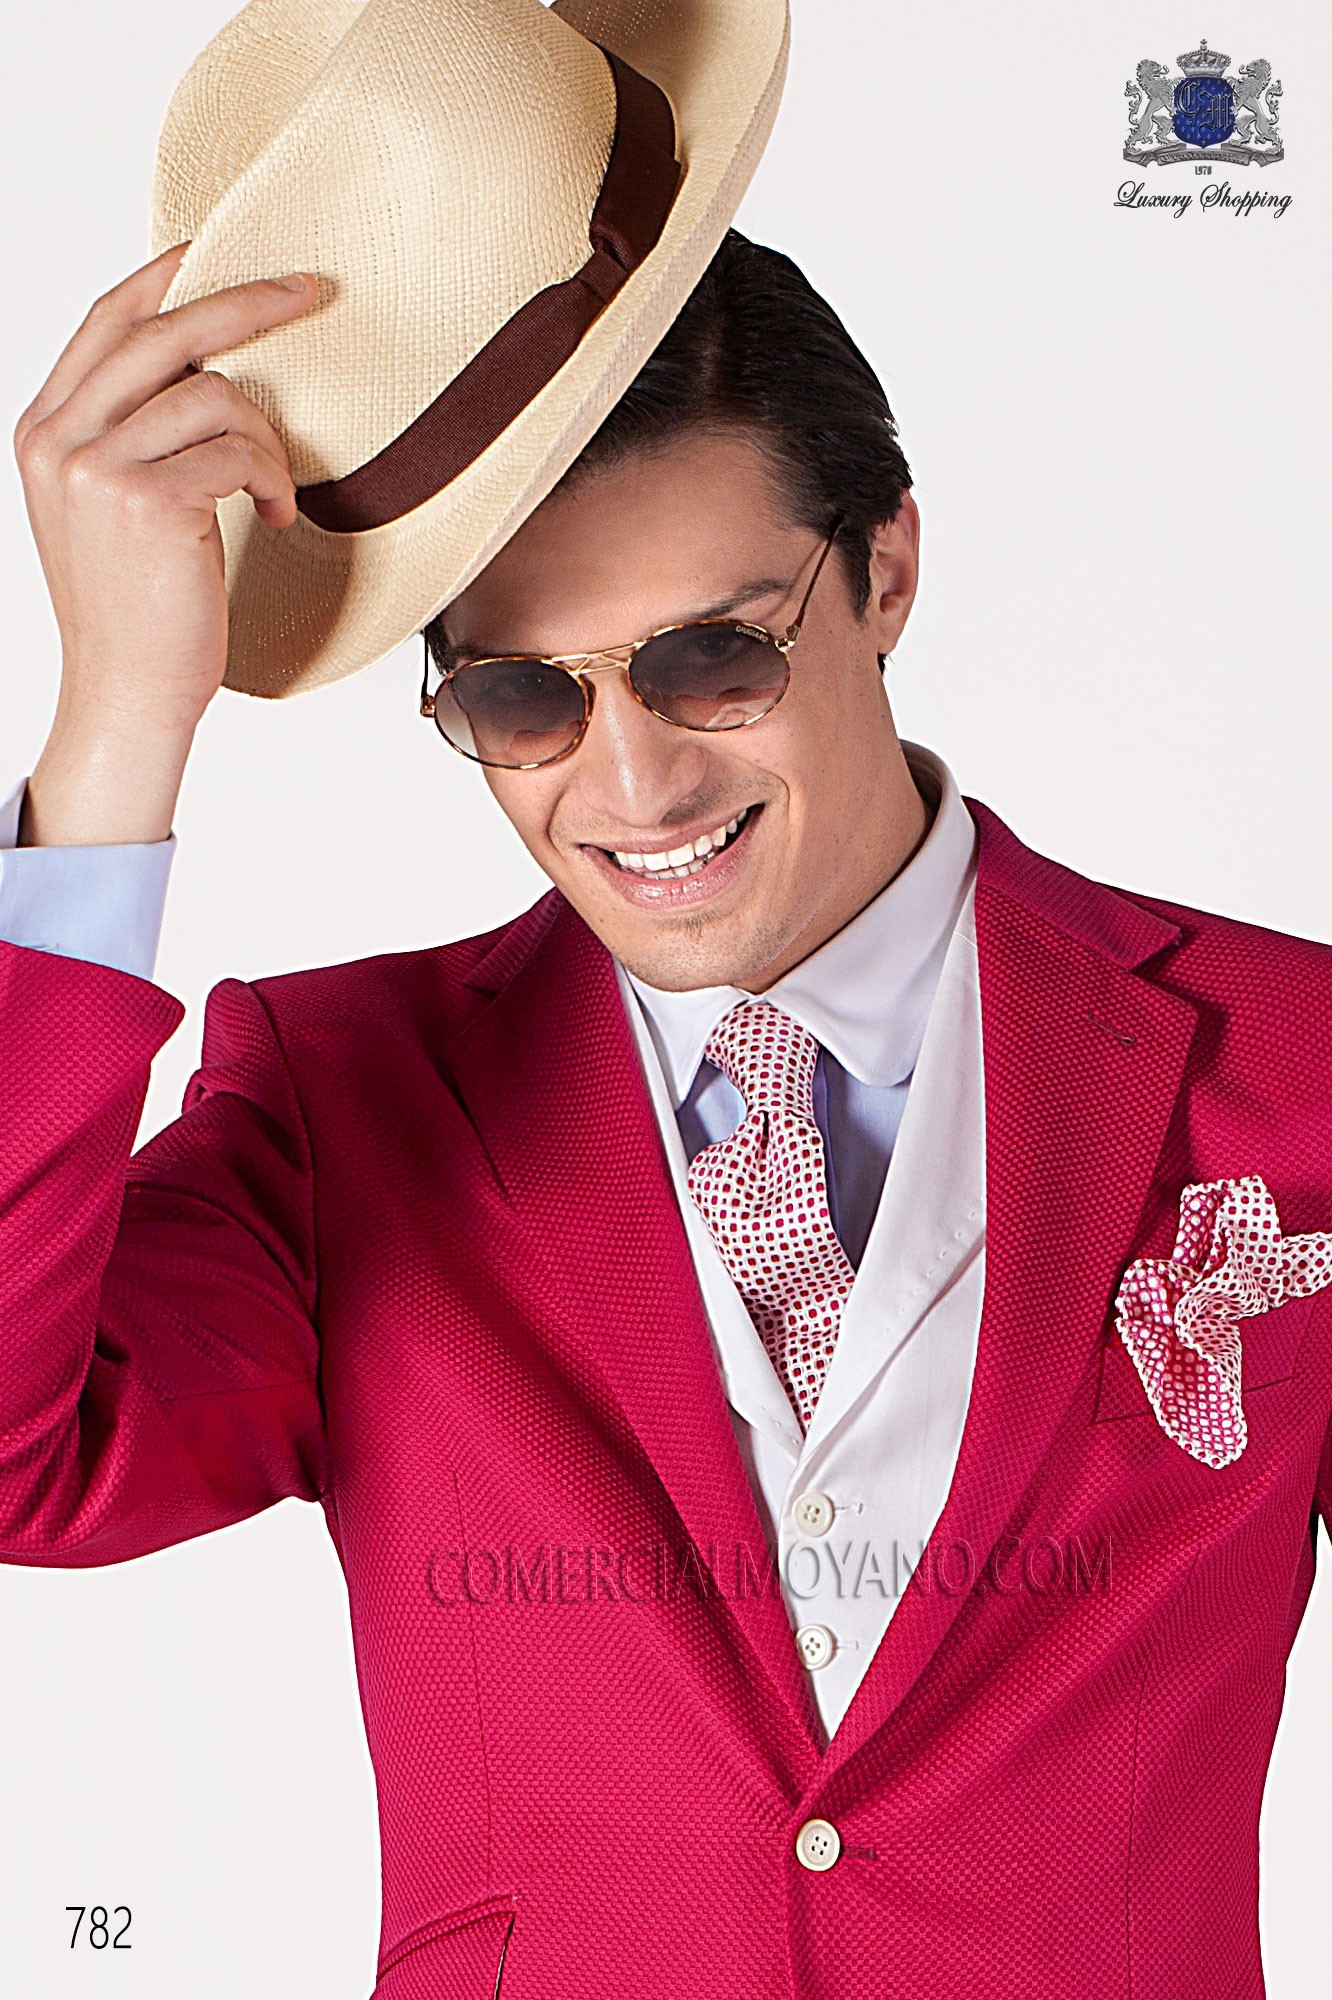 Italian hipster fuchsia men wedding suit, model: 782 Ottavio Nuccio Gala Hipster Collection